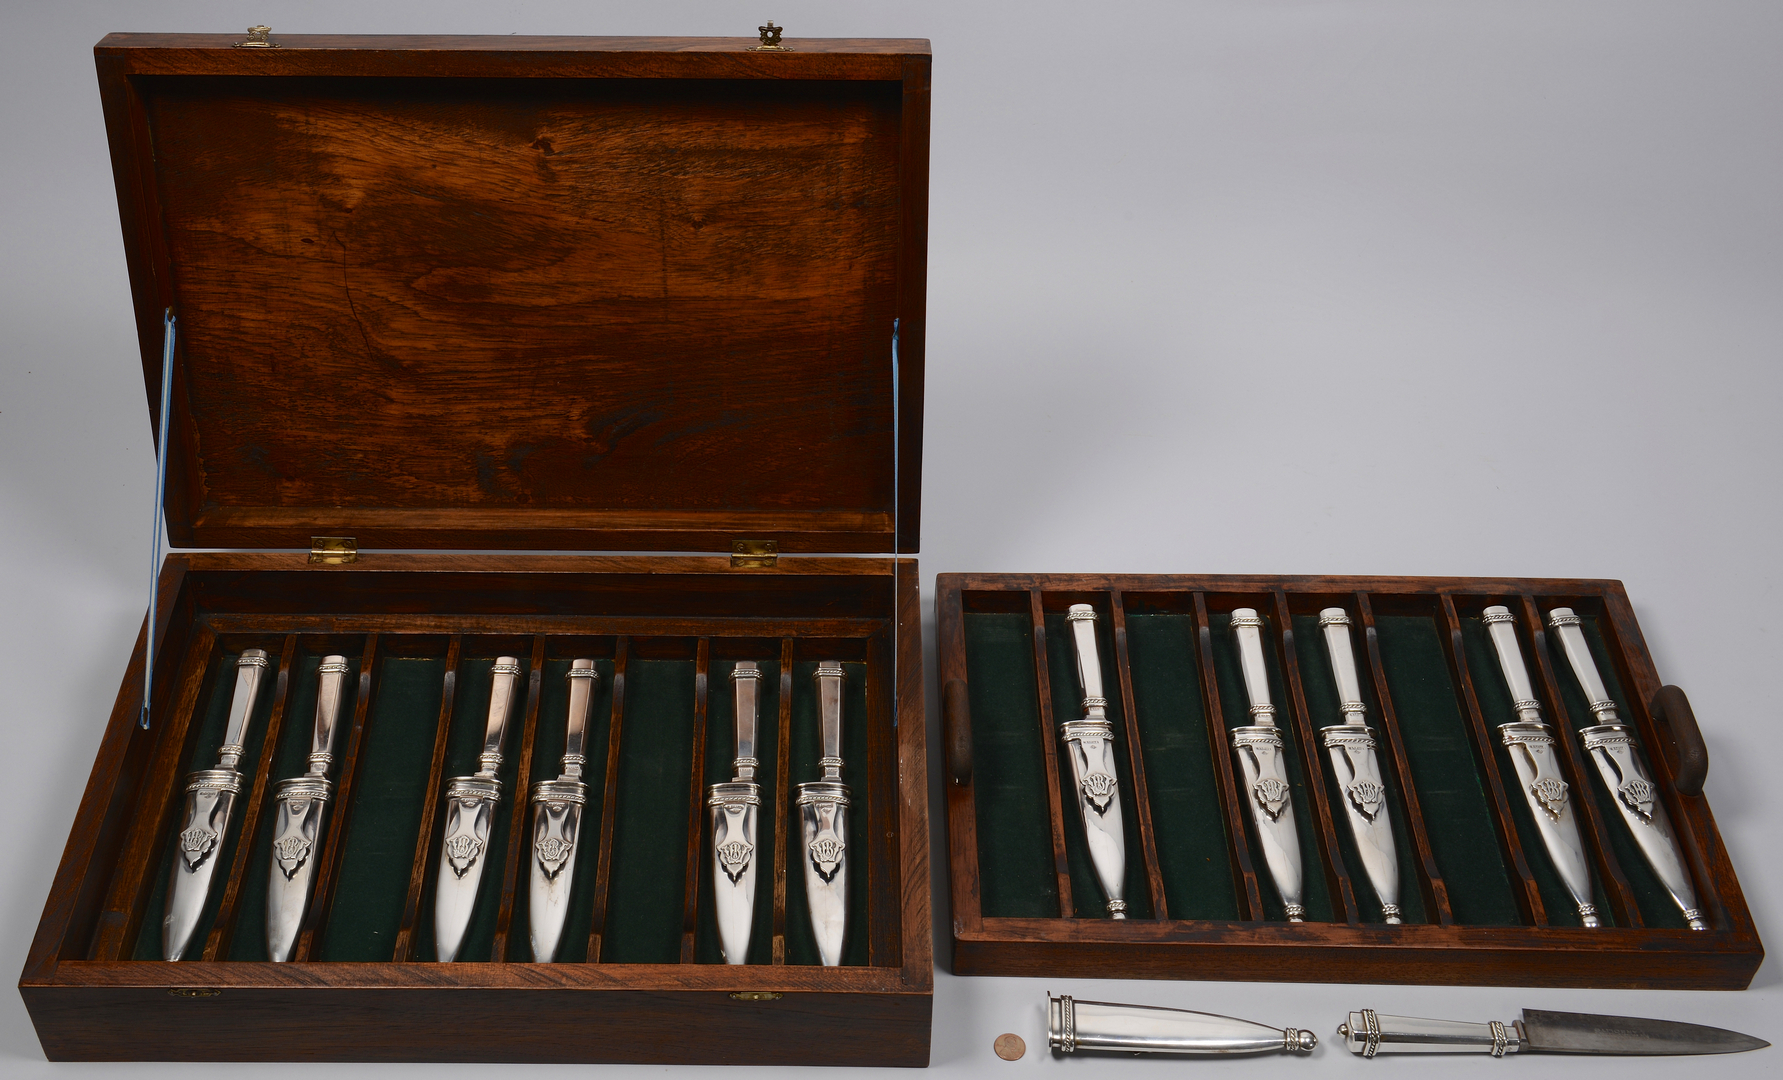 Lot 258: Set of 12 Silver Gaucho Knives, Argentina